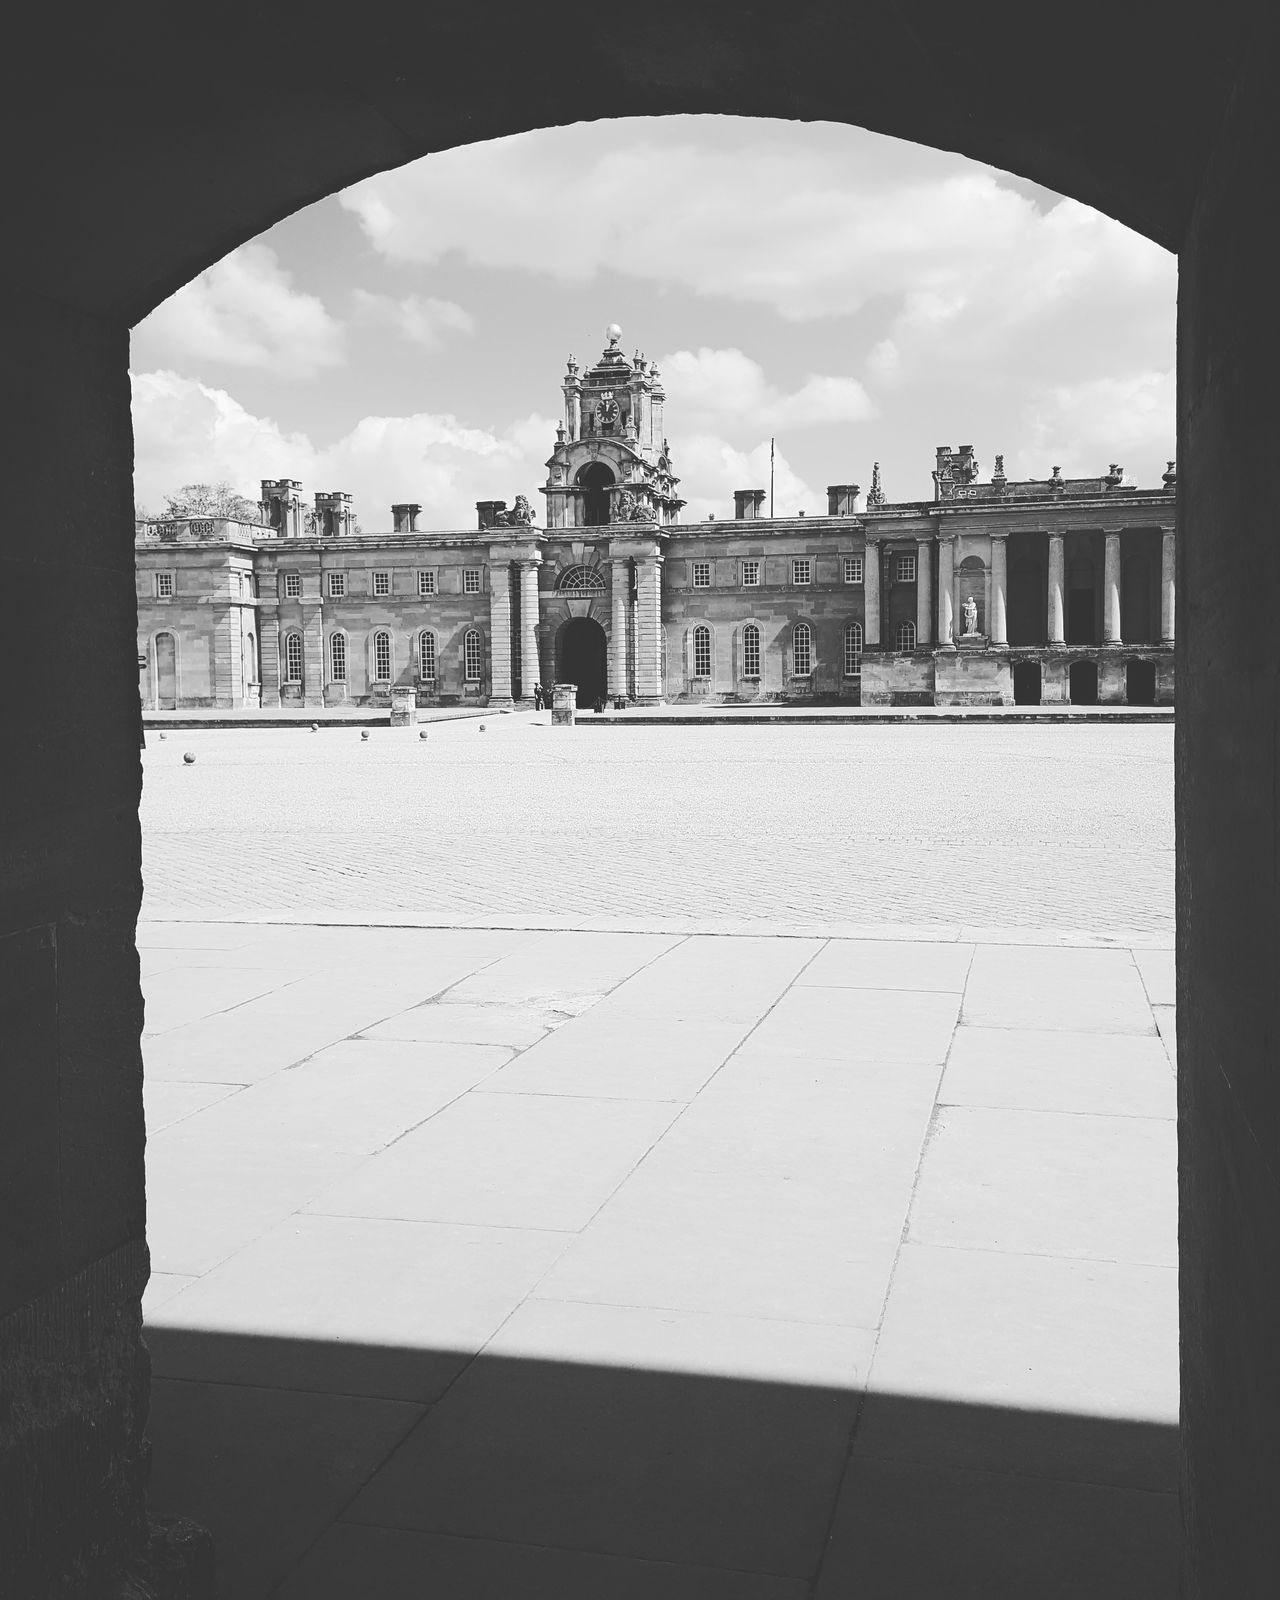 Blenheimpalace Blackandwhite Architecture History Built Structure No People Window View Oxfordshire Woodstock Politics And Government Building Exterior The Architect - 2017 EyeEm Awards